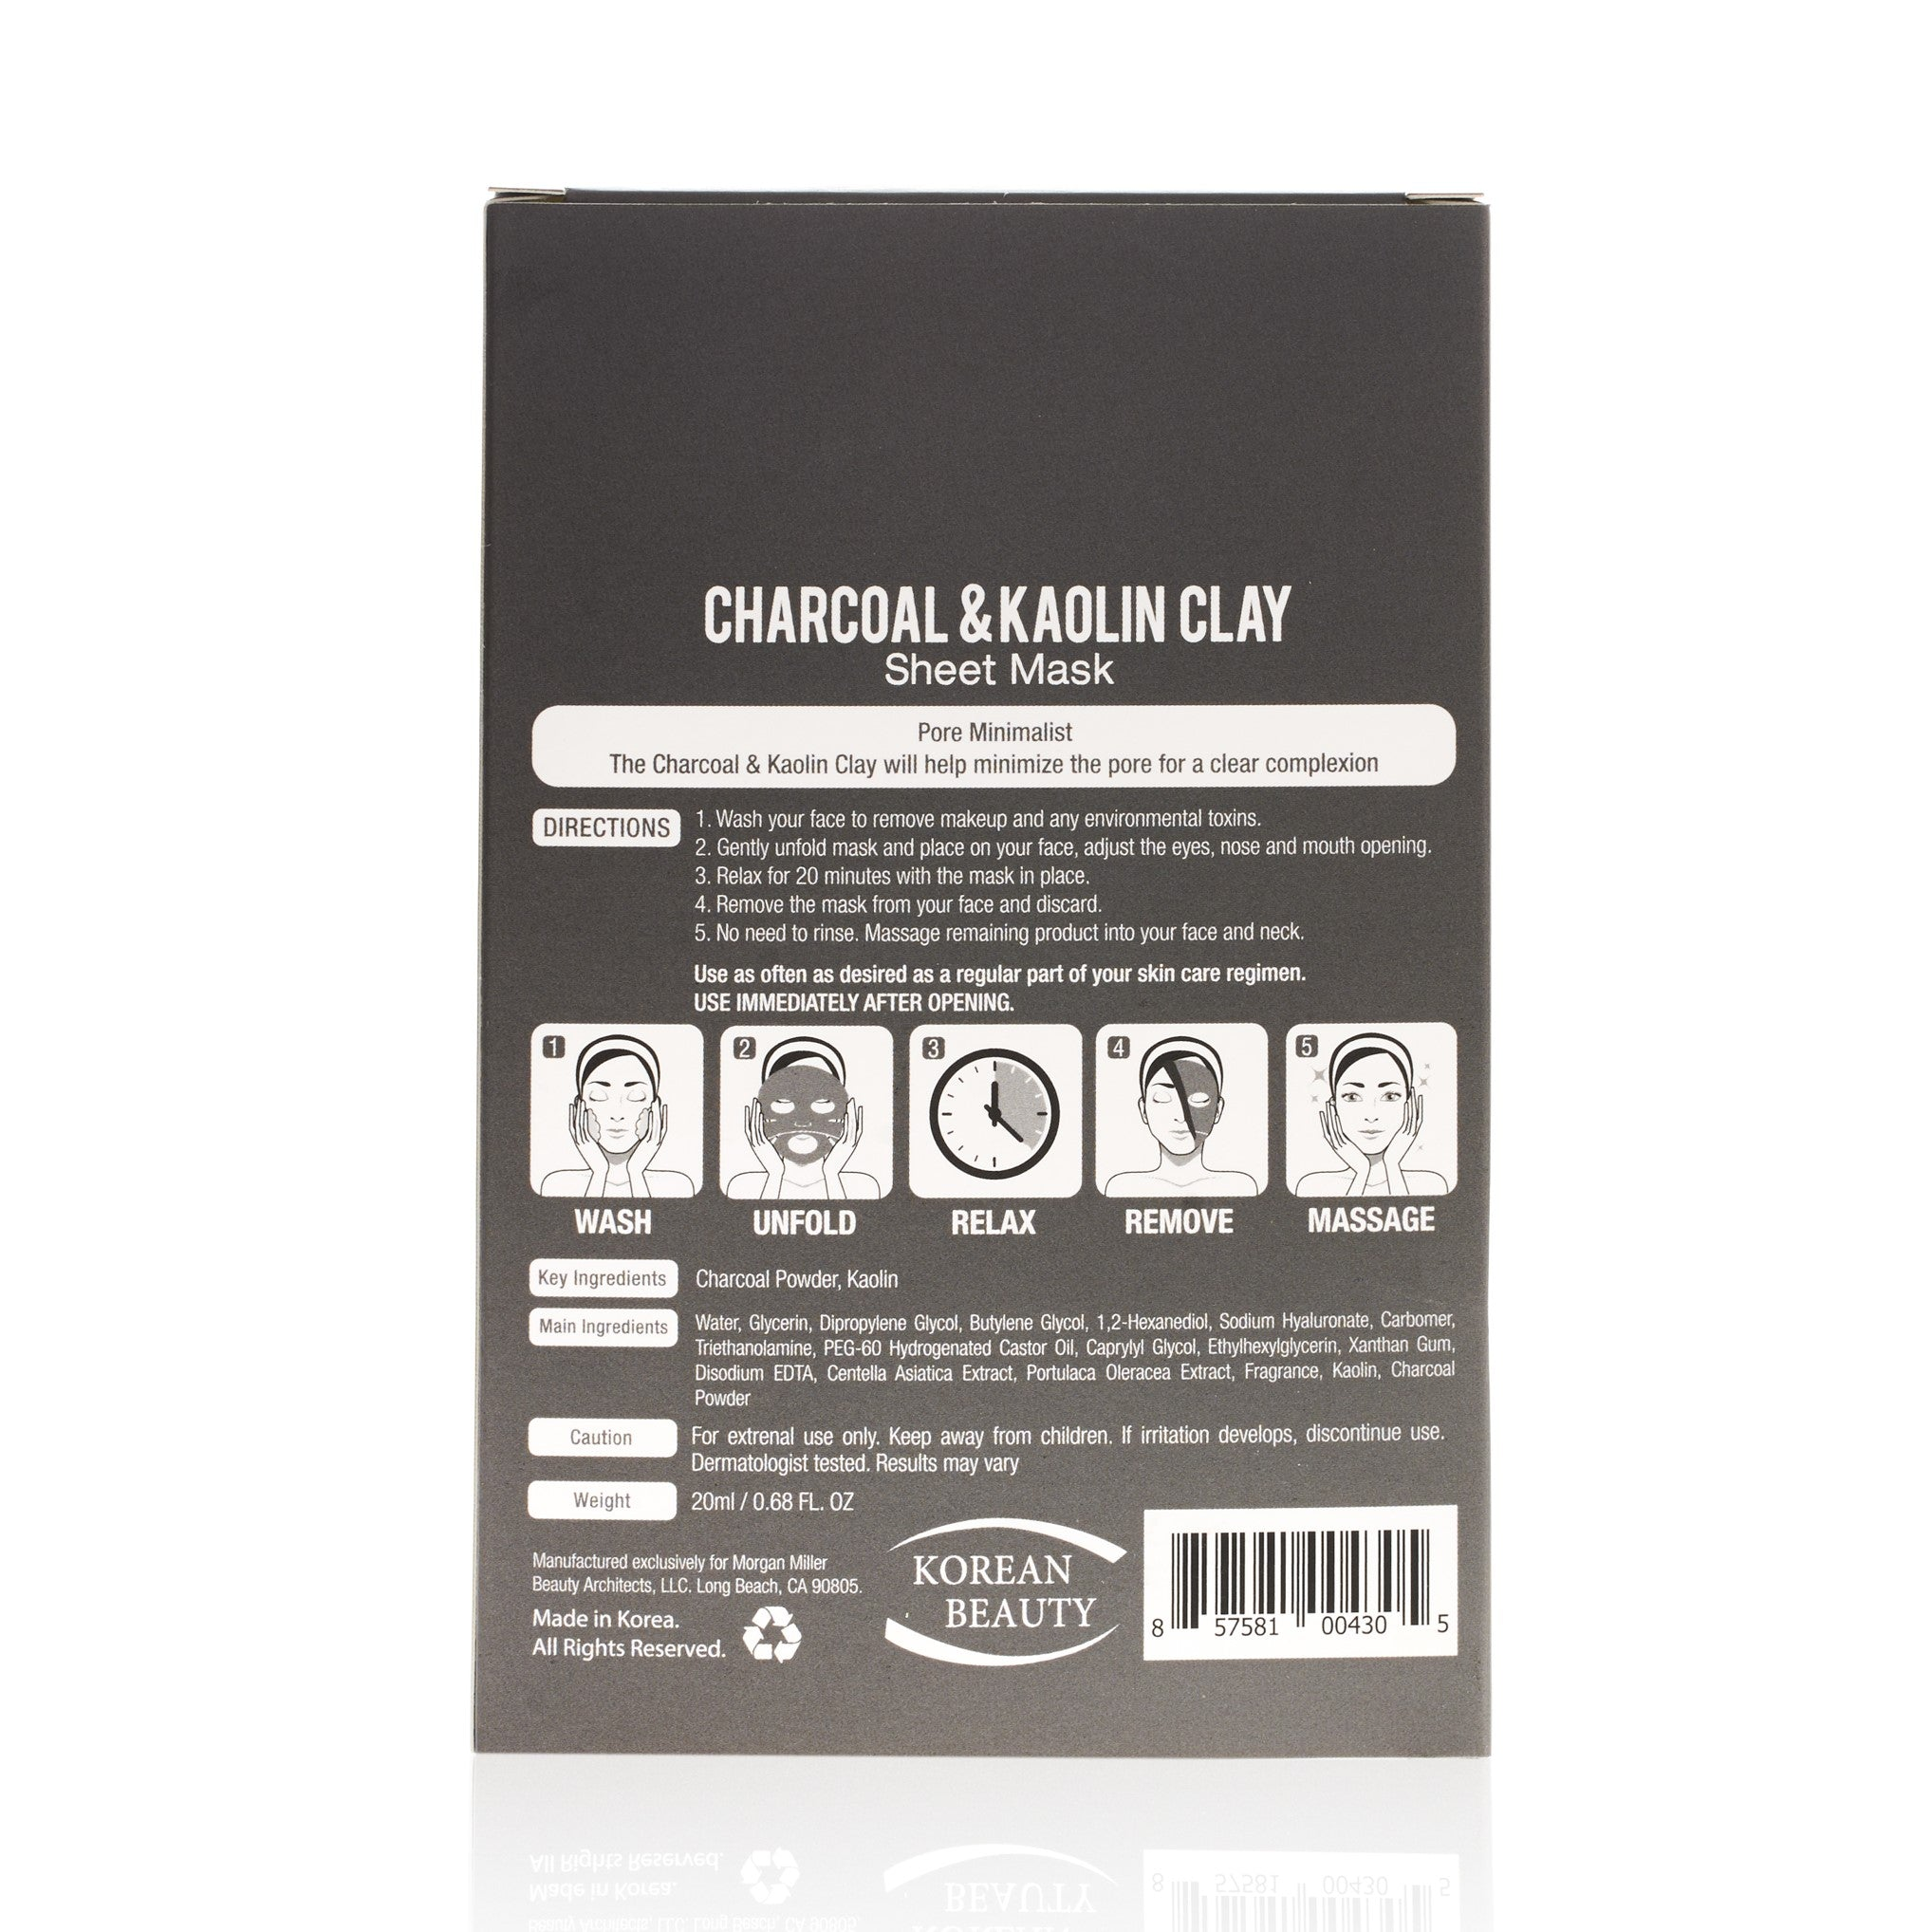 Back of Morgan Miller Charcoal & Kaolin Clay Sheet Masks packaging